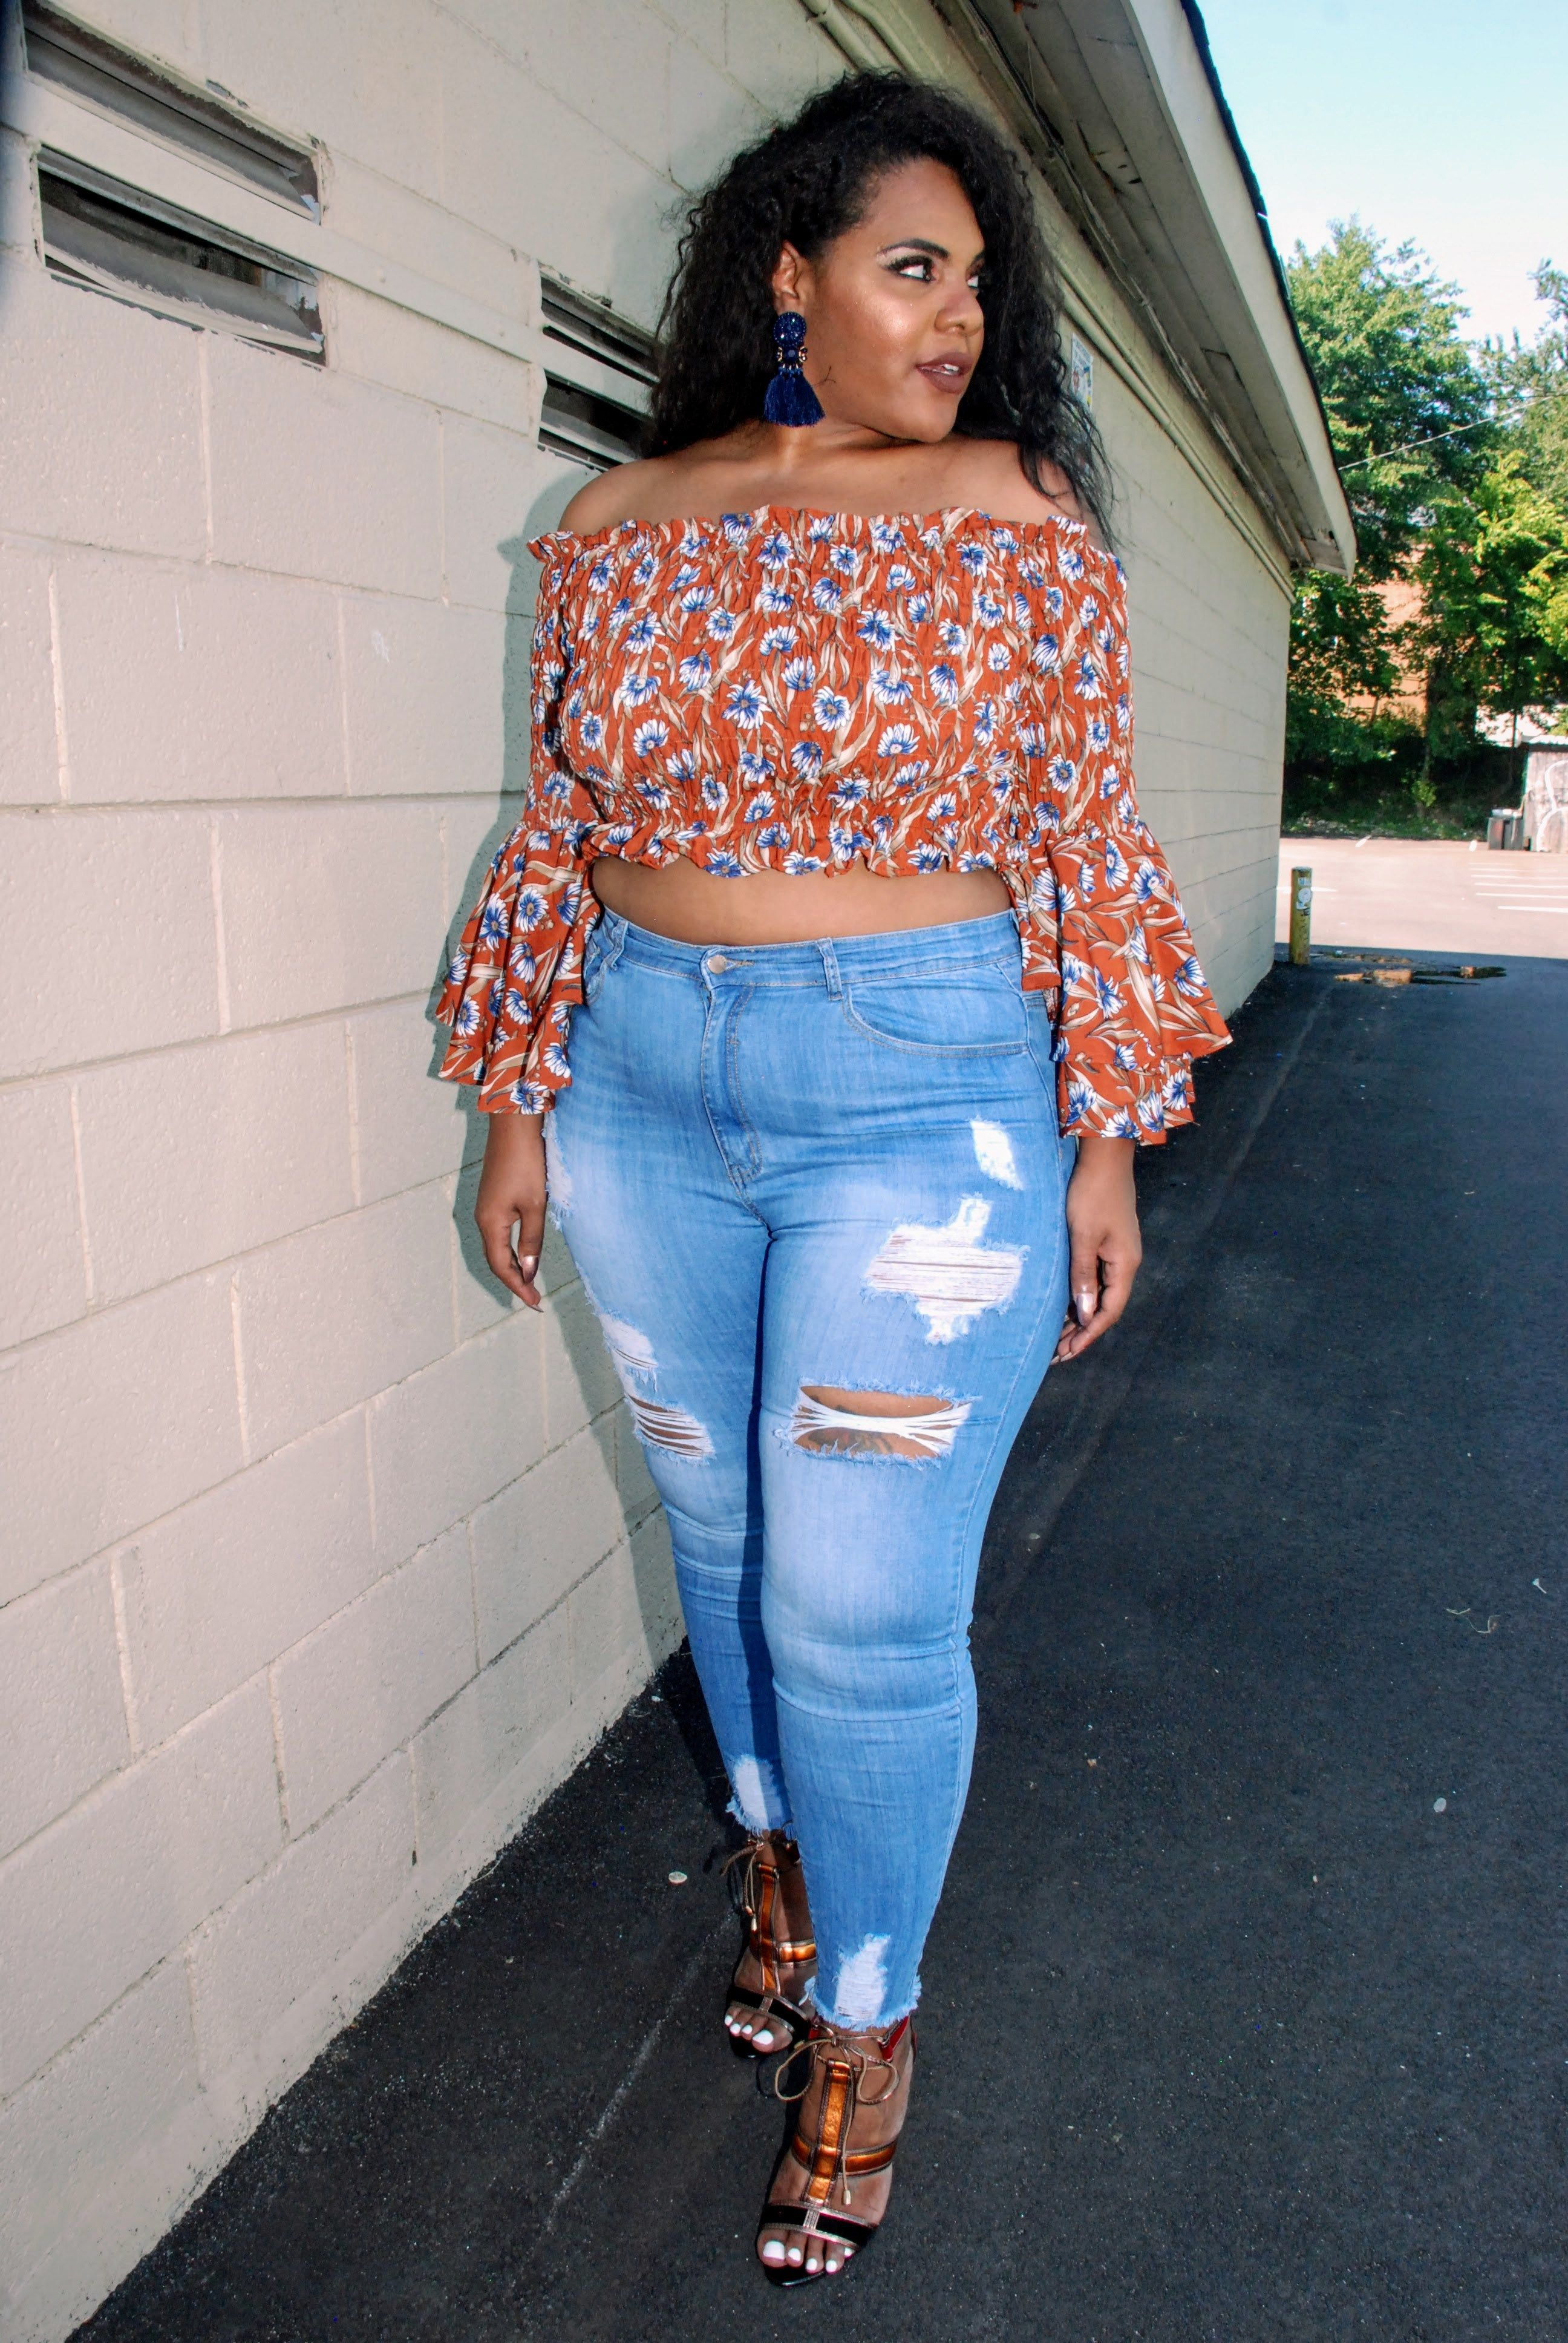 88f06afd32 plus size jeans, how does fashion nova jeans fit, fit fashion nova jeans,  plus size distressed jeans, plus size crop top, plus size fashion nova,  fashion ...